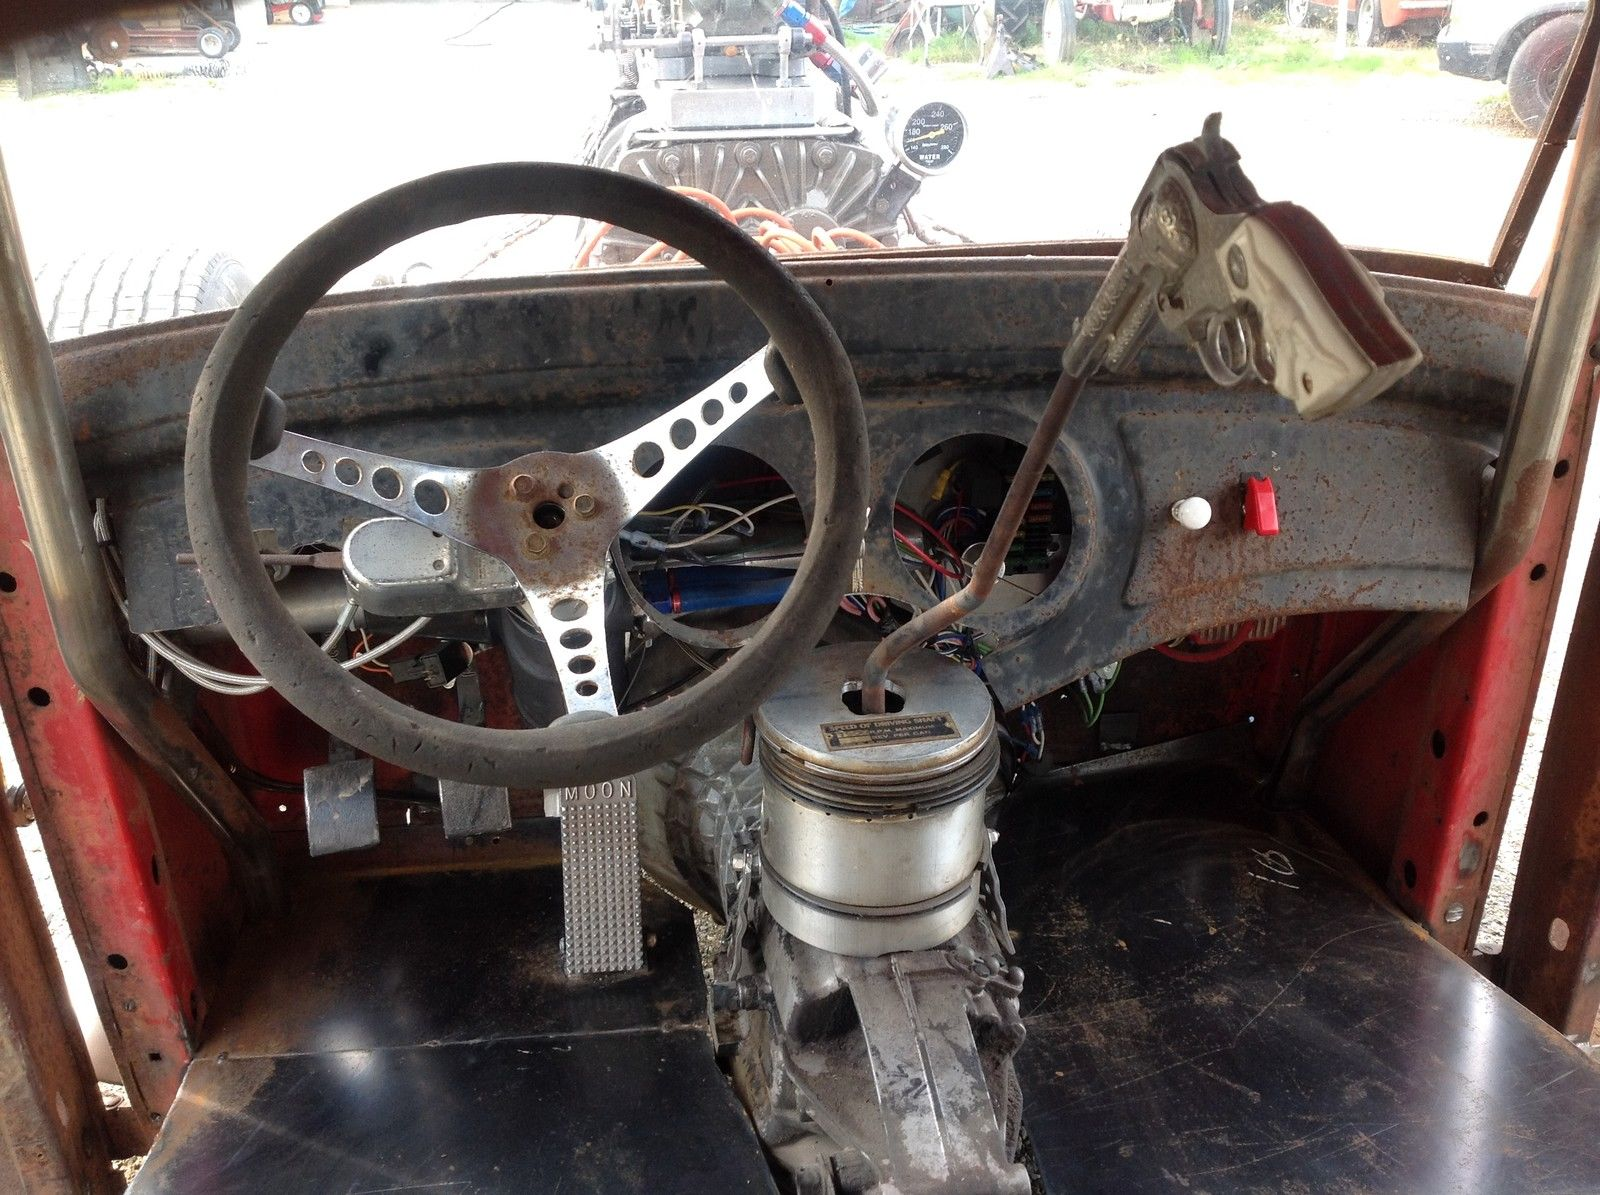 1936 Ford Wiring Harness Bangshift Com Wow This Is One Crazy International